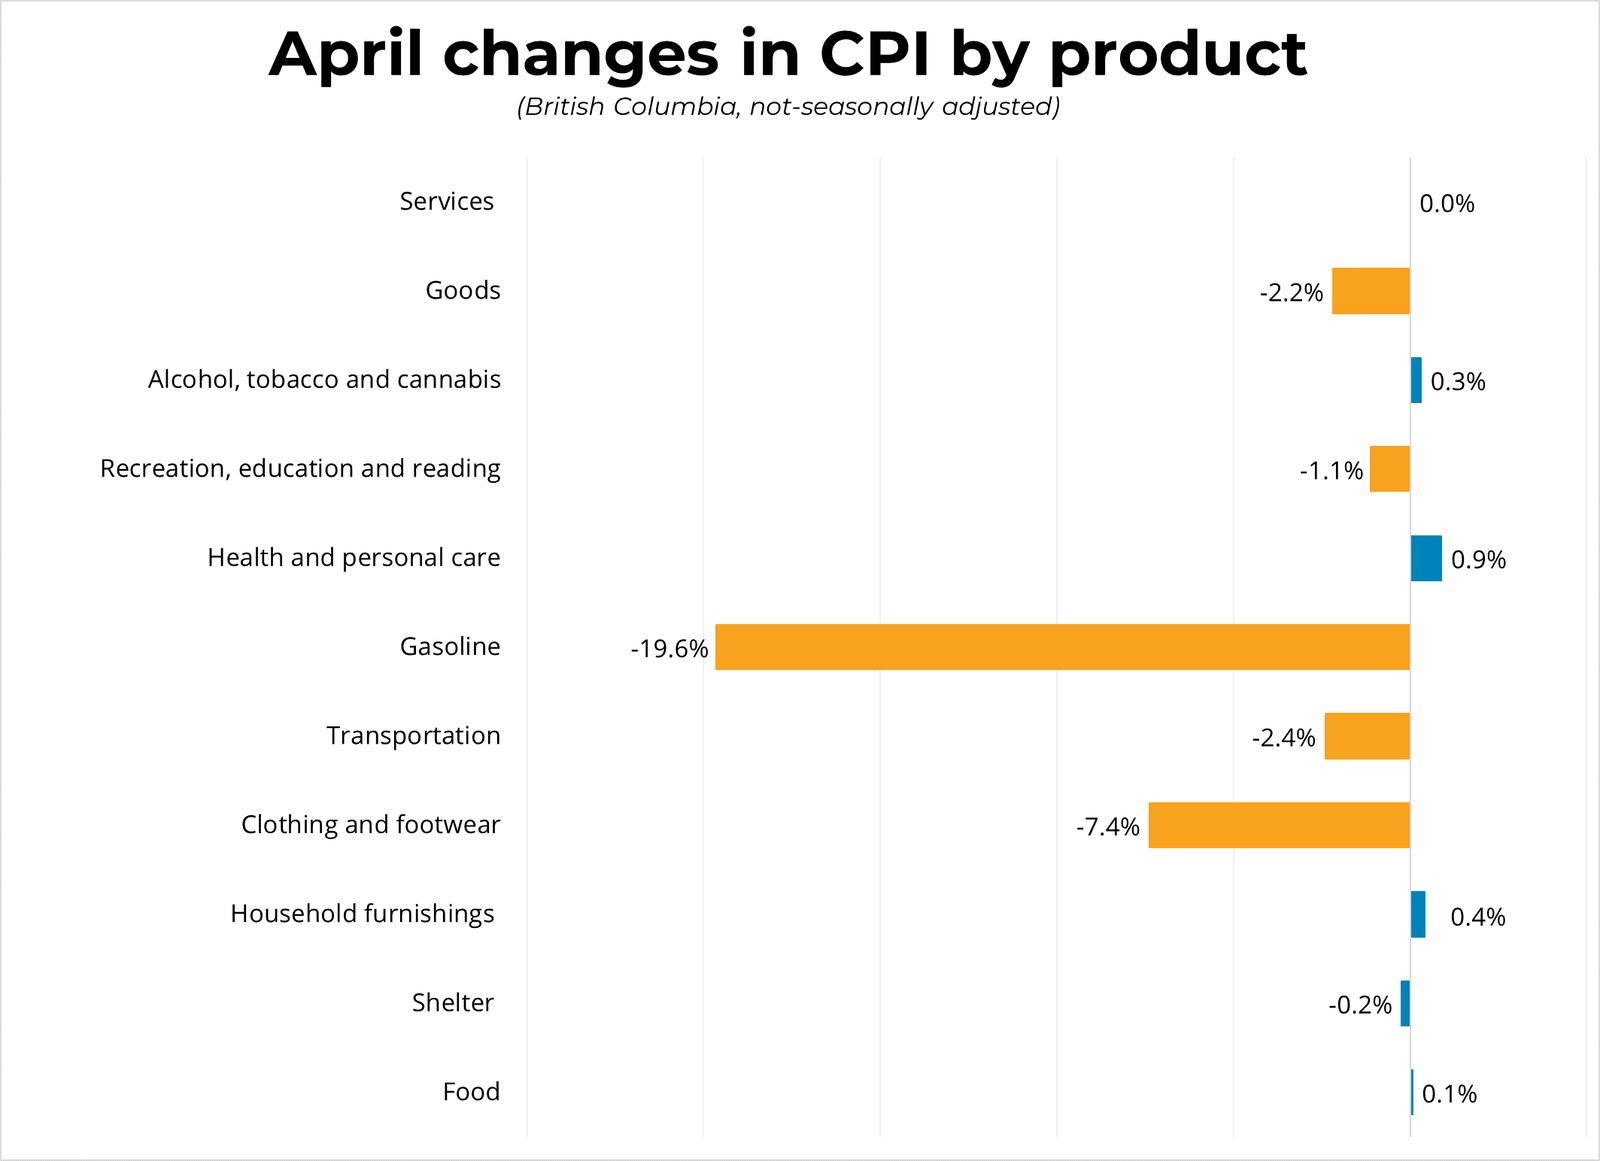 April Changes in CPI by Product